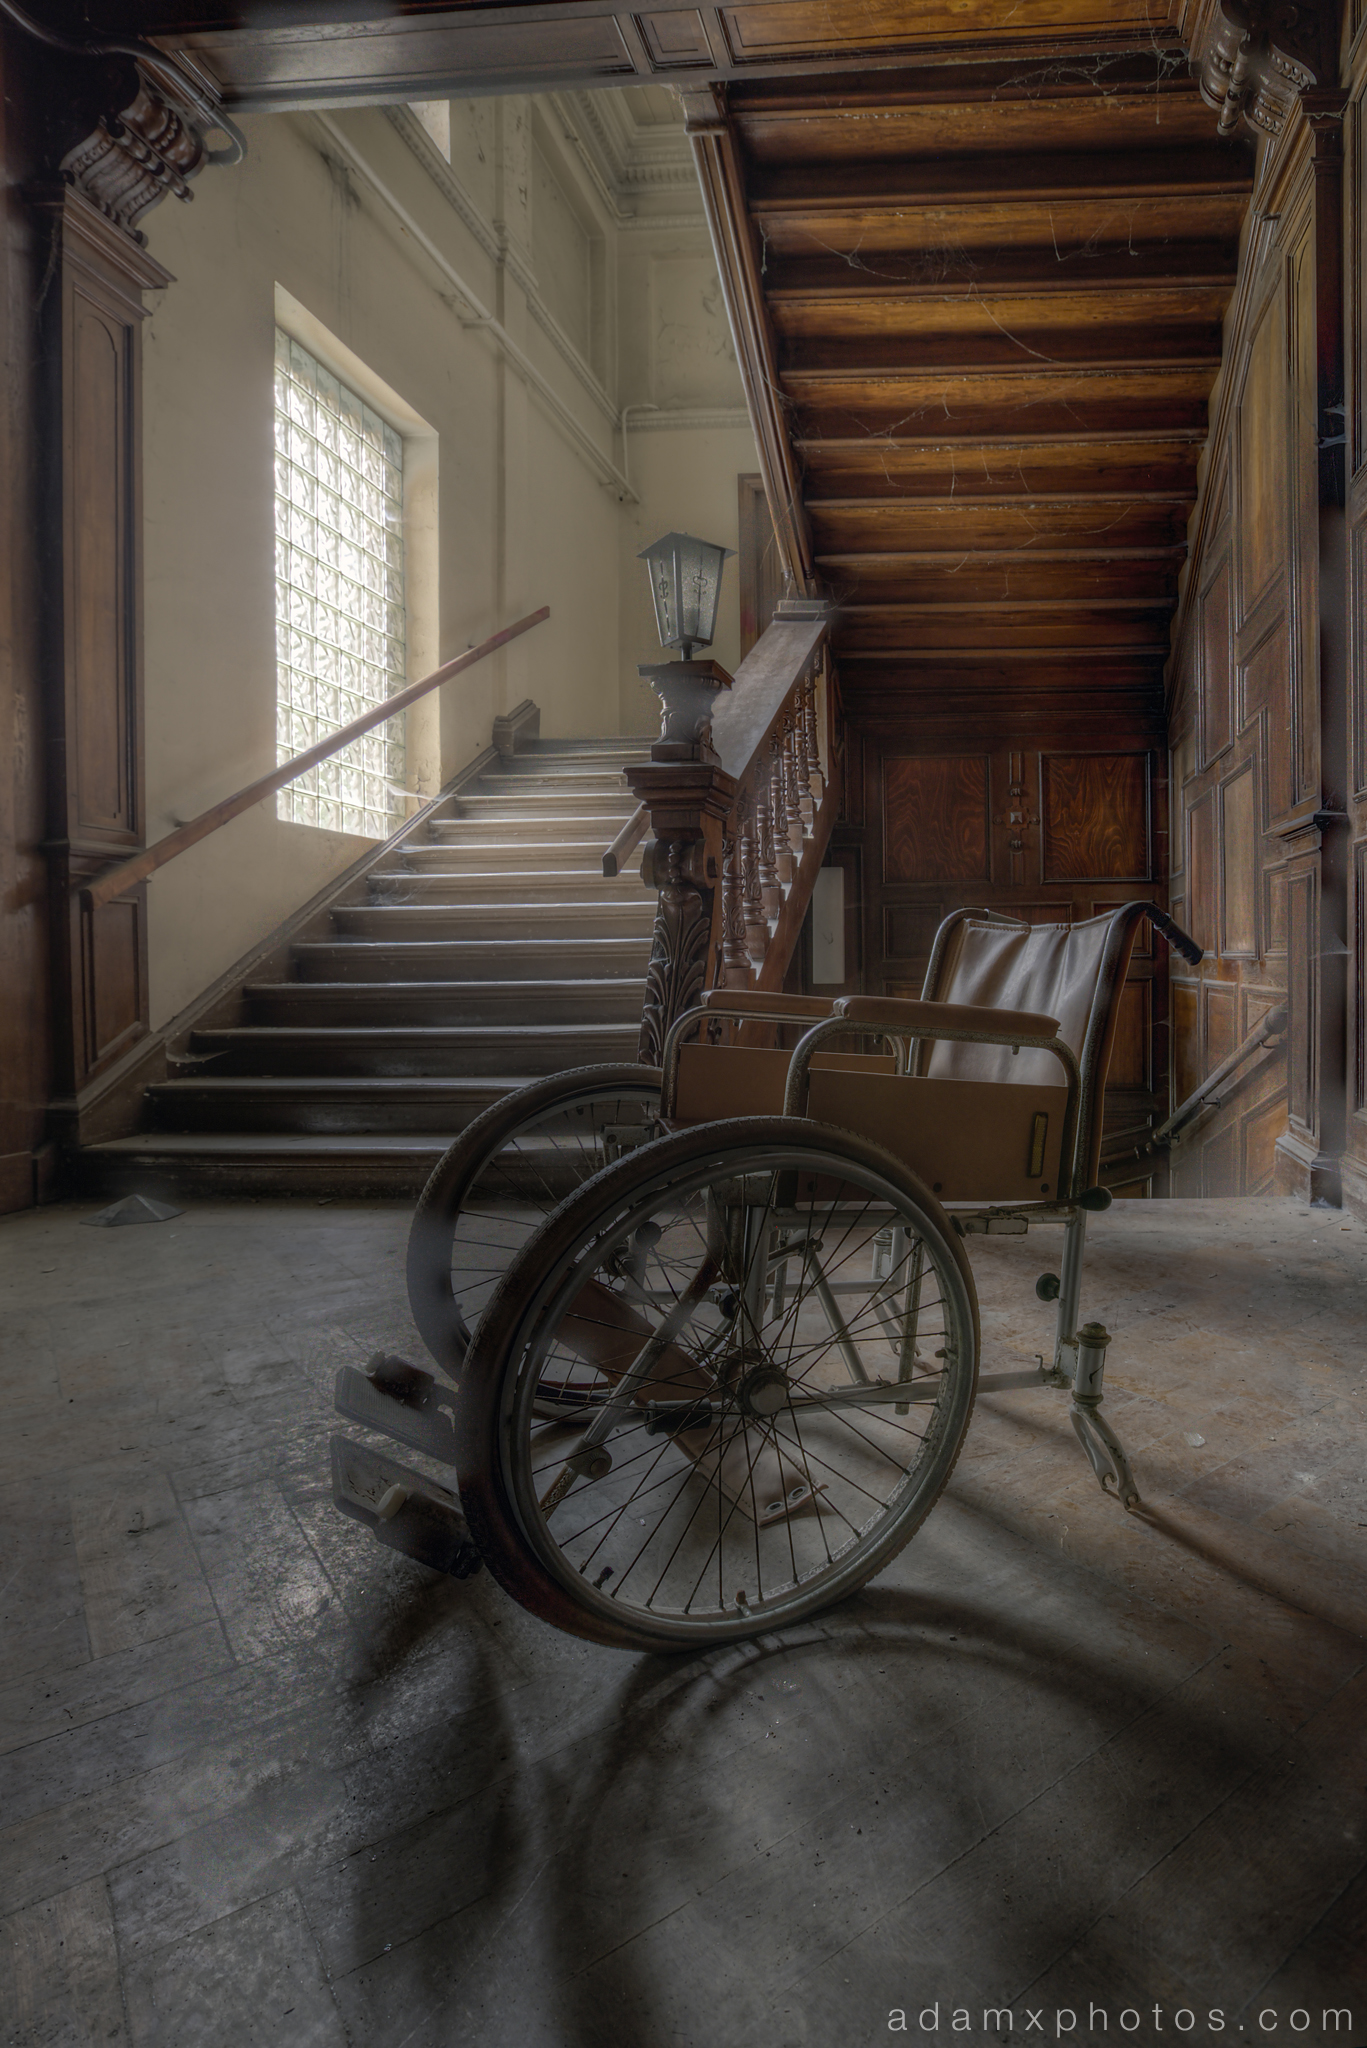 Adam X Urbex Krankenhaus von rollstuhlen Hospital of wheelchairs Germany Urban Exploration Decay Lost Abandoned Hidden Wheelchair stairs staircase wooden carved